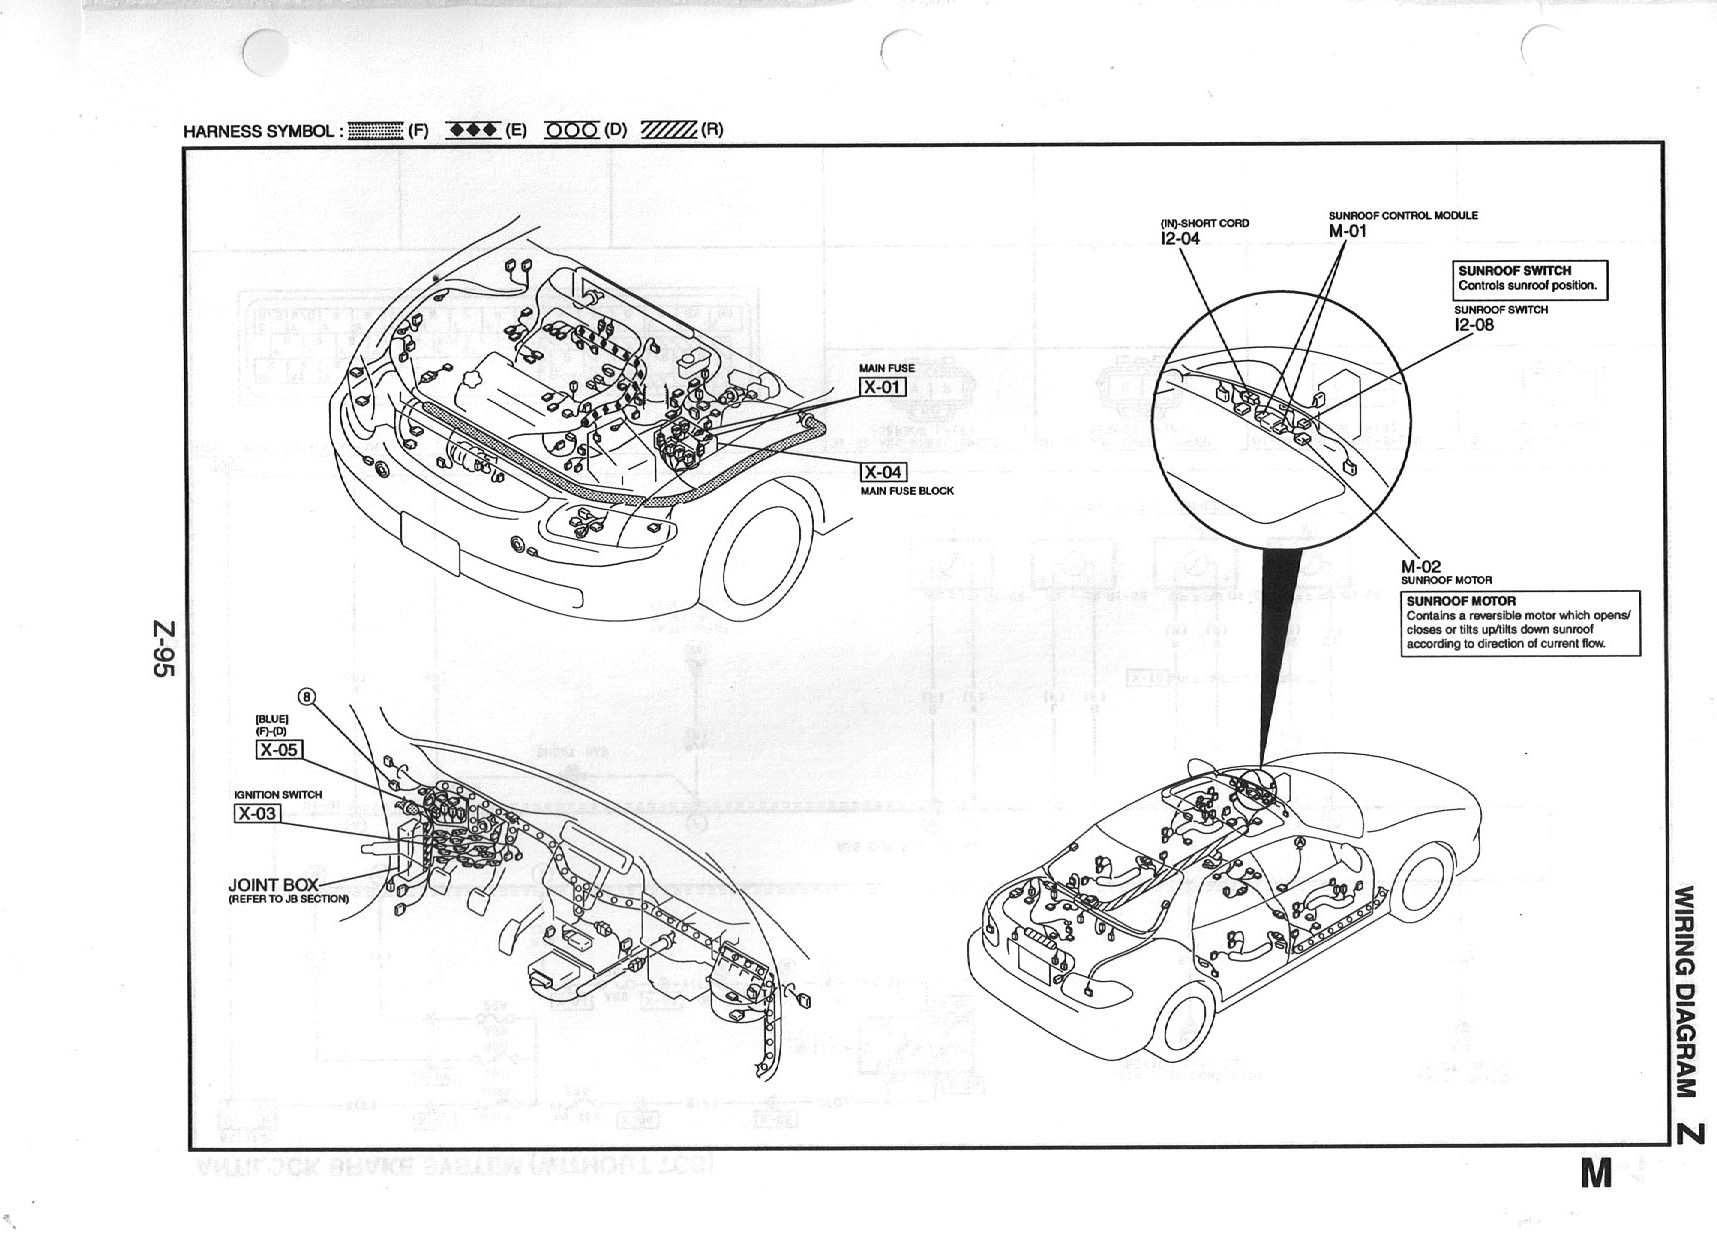 Us Mazda 626 Mx 6 Work Shop Manuals Scans 2001 2004 Sunroof Wiring Diagram Z 095 341kb Aug 07 2015 111400 Am